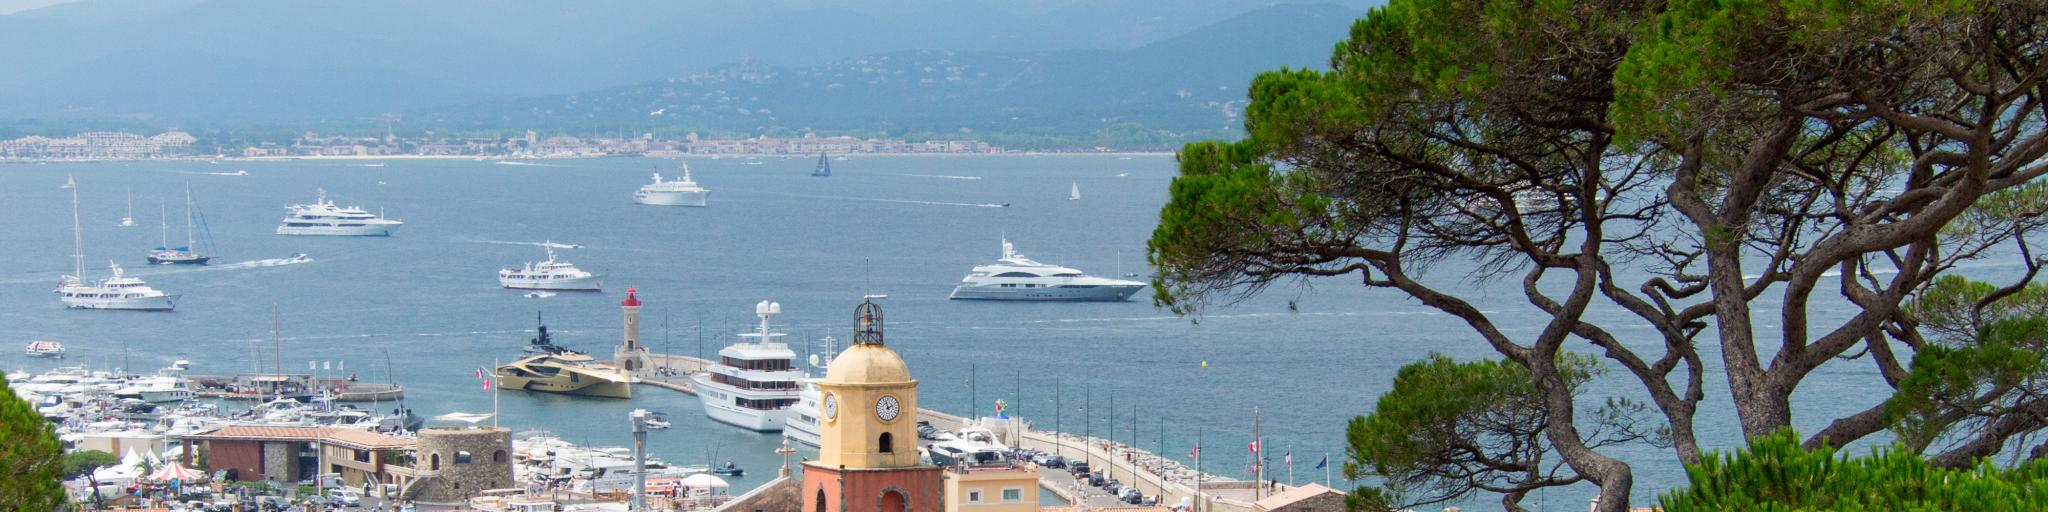 A view of St Tropez, France, from a vista point, with the sea and mountains in the background